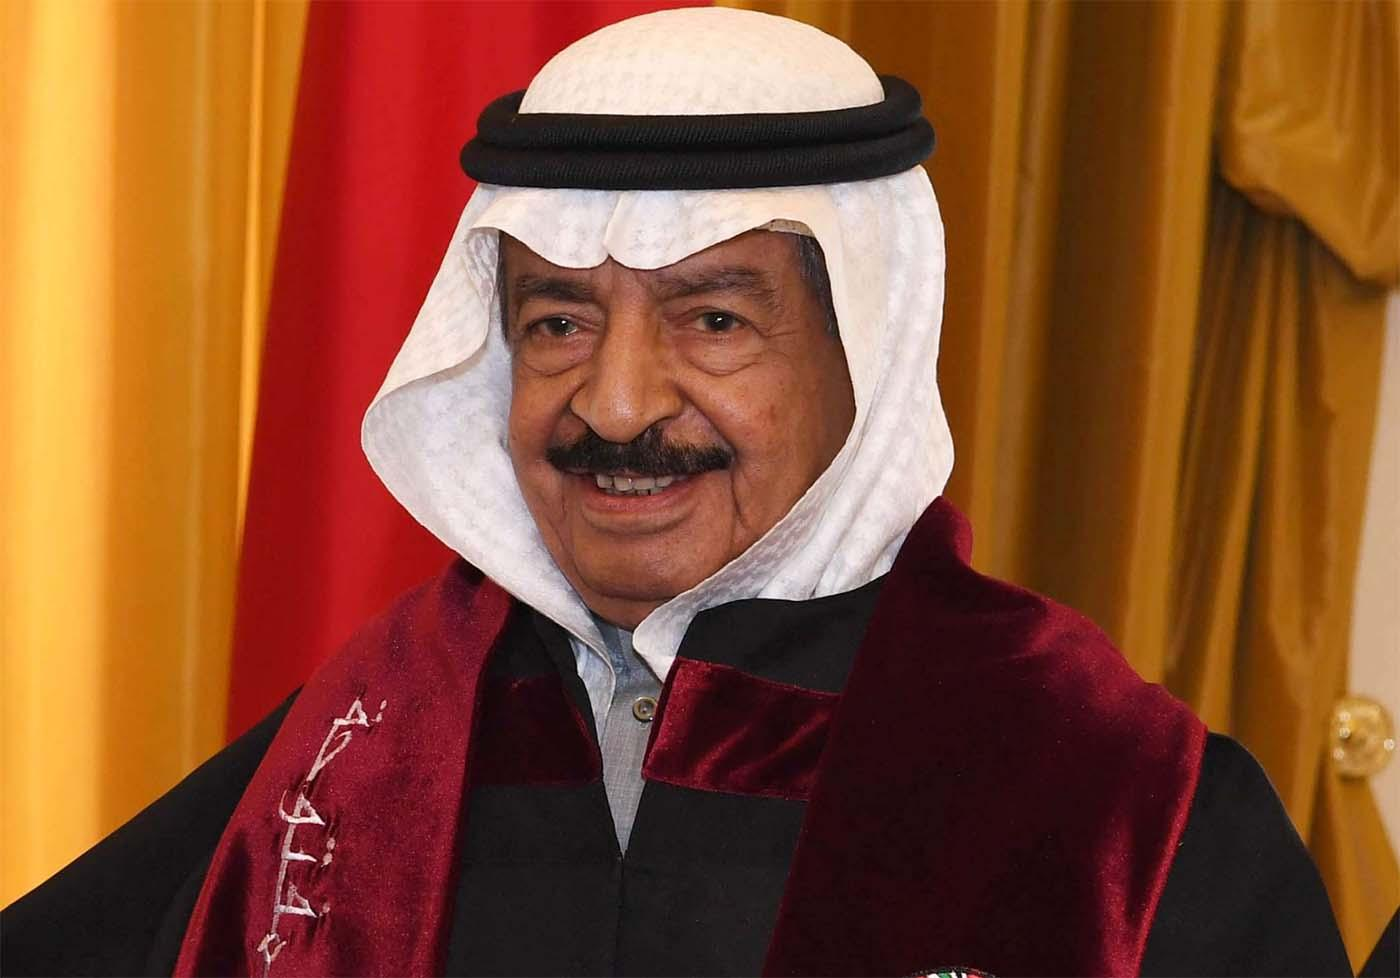 Bahrain Longest Serving PM, Salman Al Khalifa Dies At 84